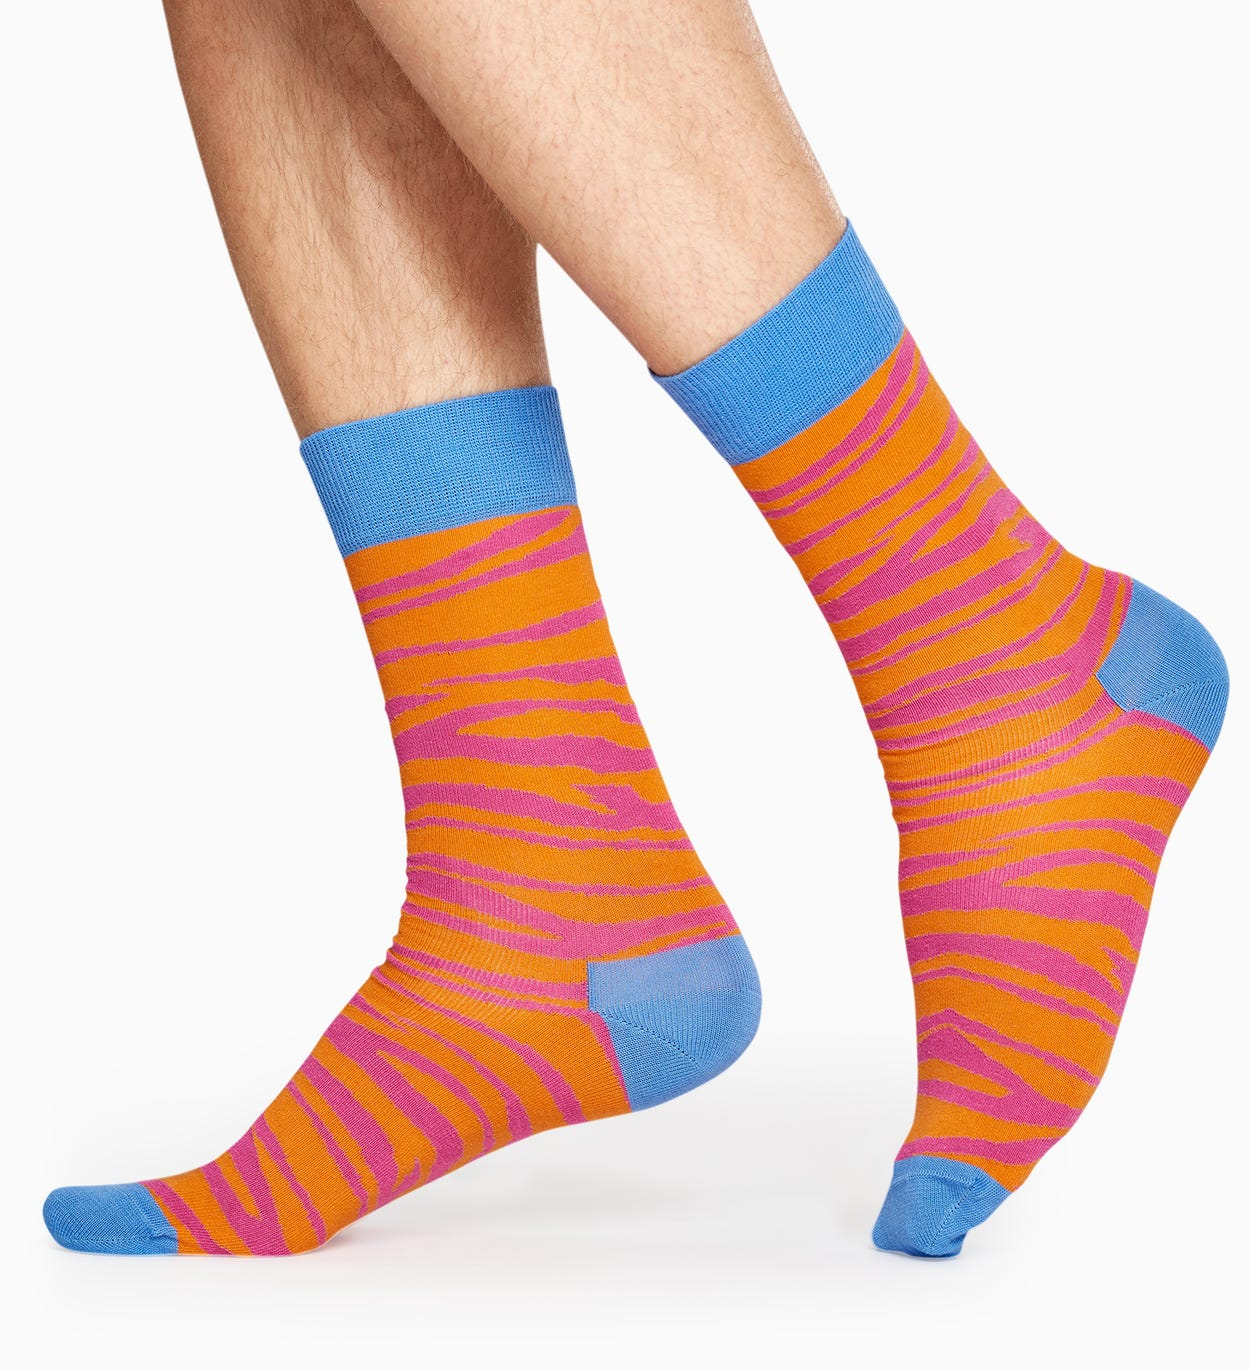 Orange socks: Zebra pattern | Happy Socks